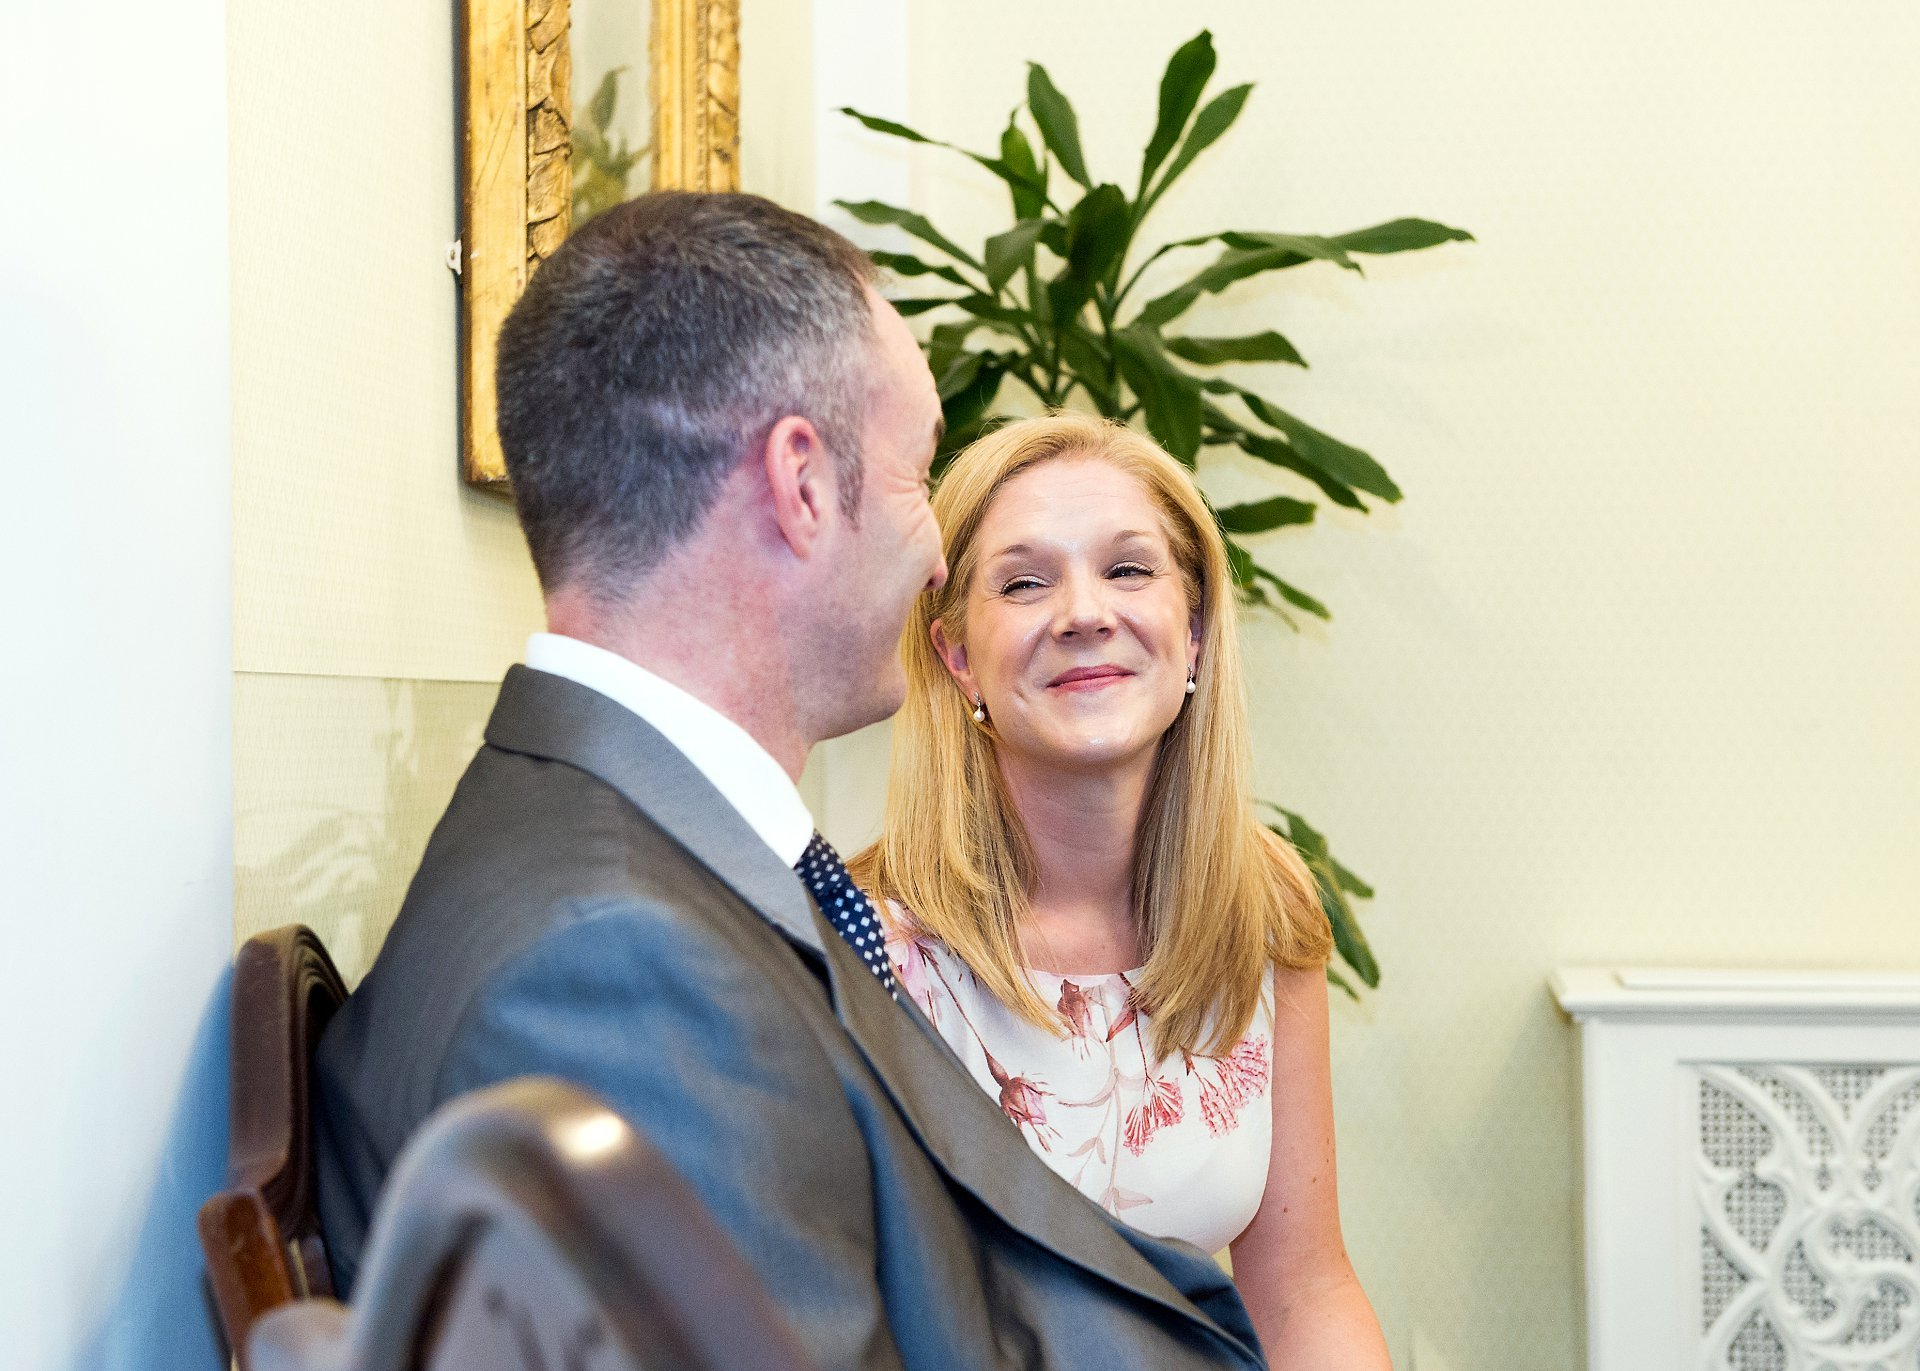 The two guests and witnesses smiling during this Chelsea wedding ceremony